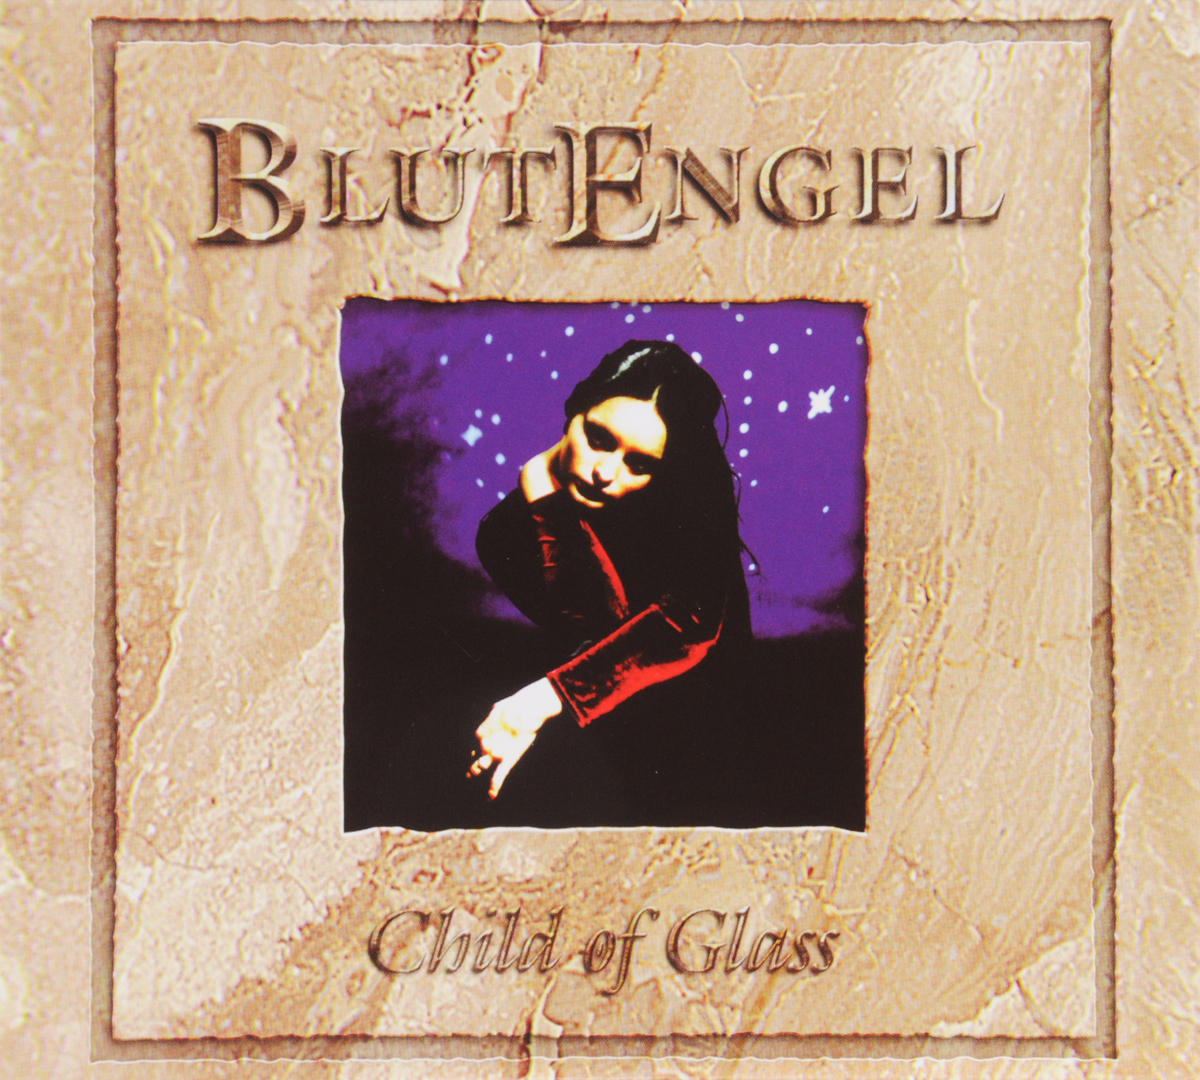 Blutengel Blutengel. Child Of Glass